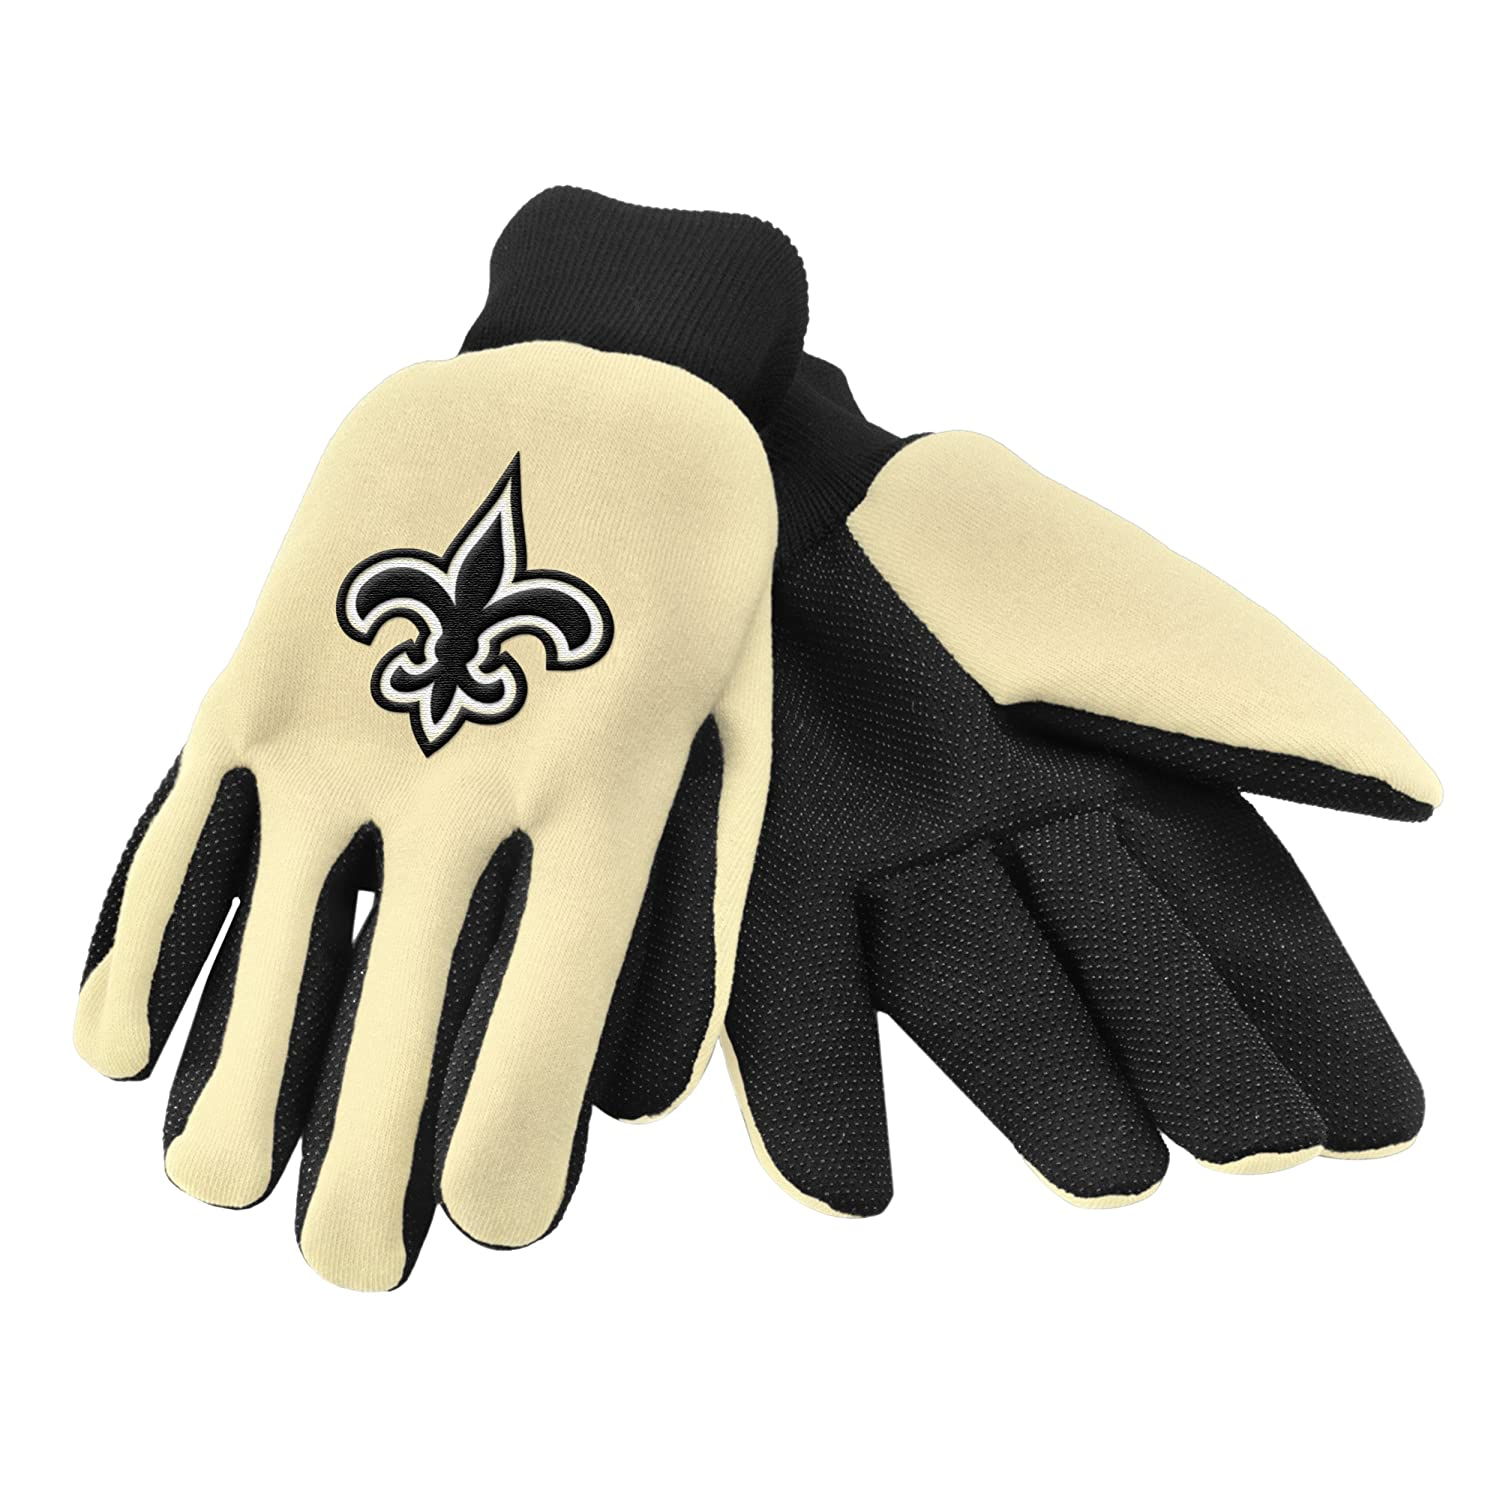 Forever Collectibles NFL Colored Palmグローブ New Orleans Saints B00X2RLJ6W